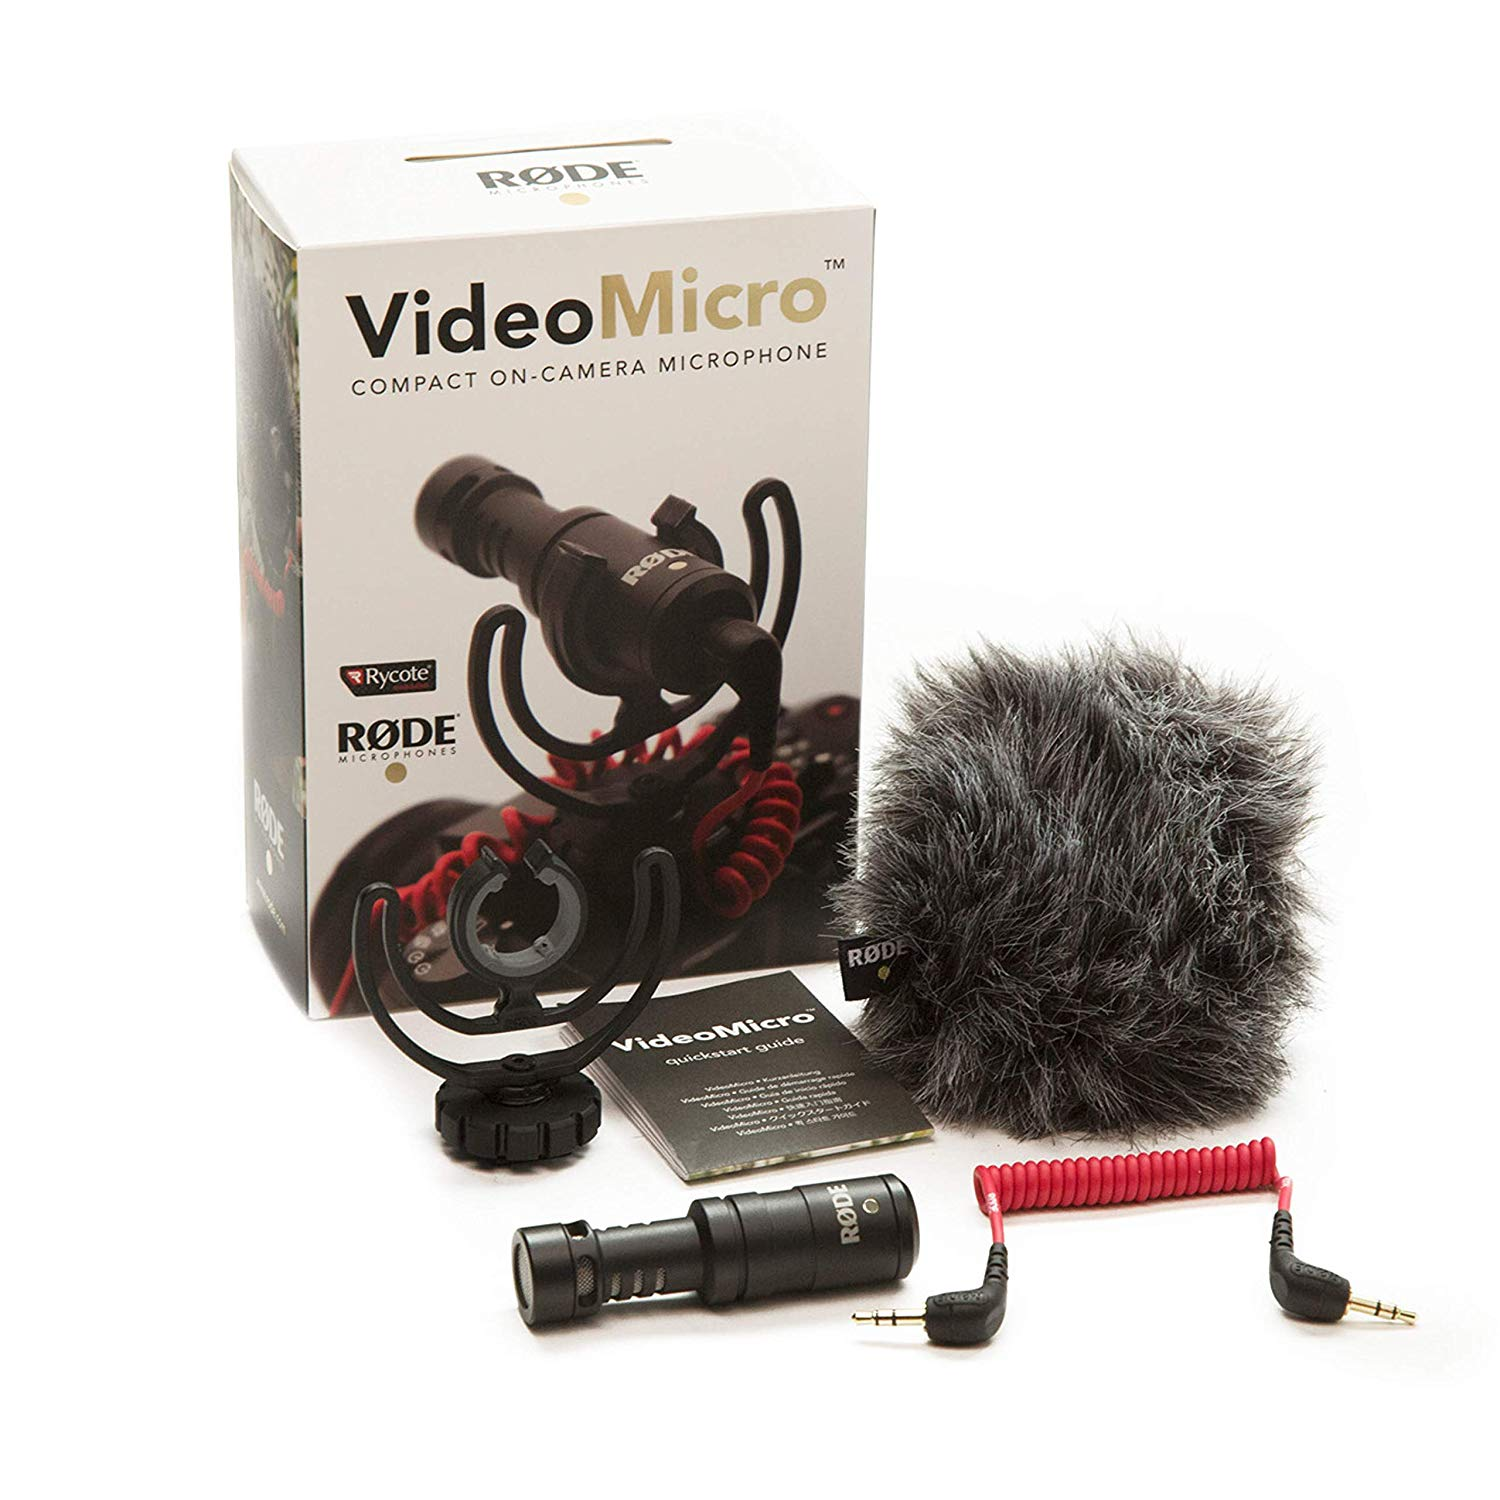 Rode VideoMicro Compact OnCamera Microphone with Rycote Lyre Shock Mount, Black